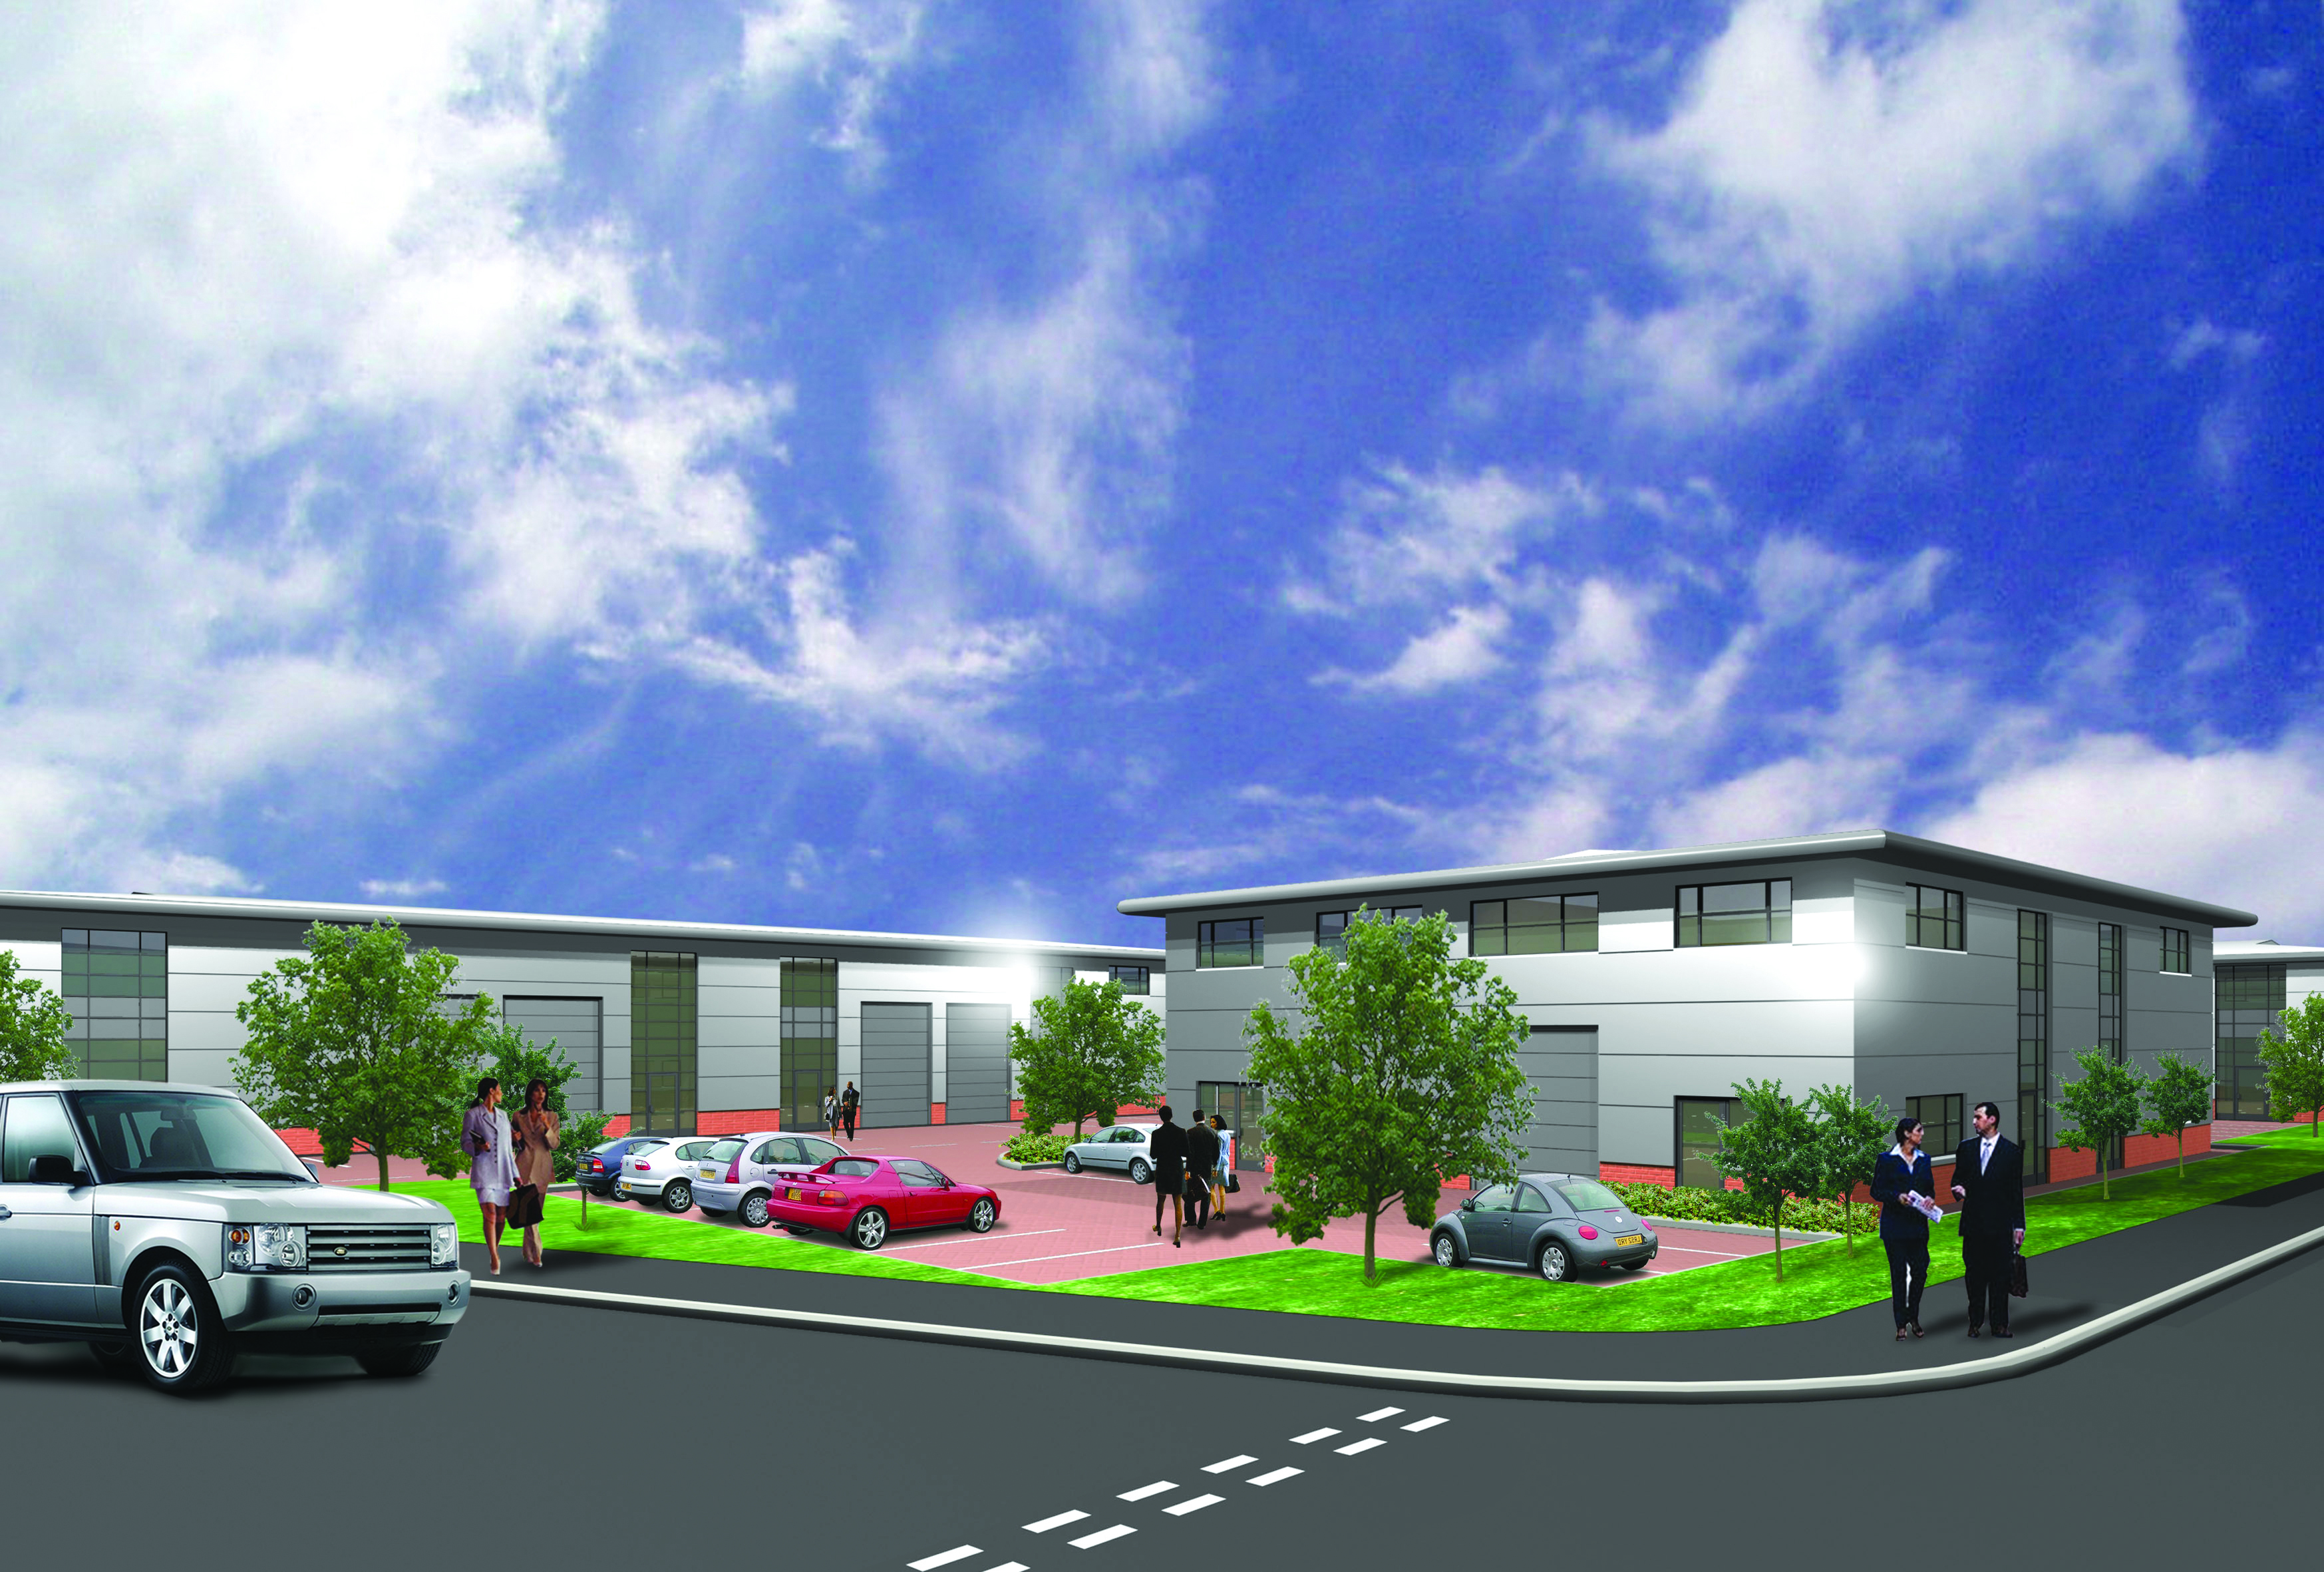 DEVONSHIRE BUSINESS PARK, Knights Park Road, BASINGSTOKE - SALE & LETTINGS